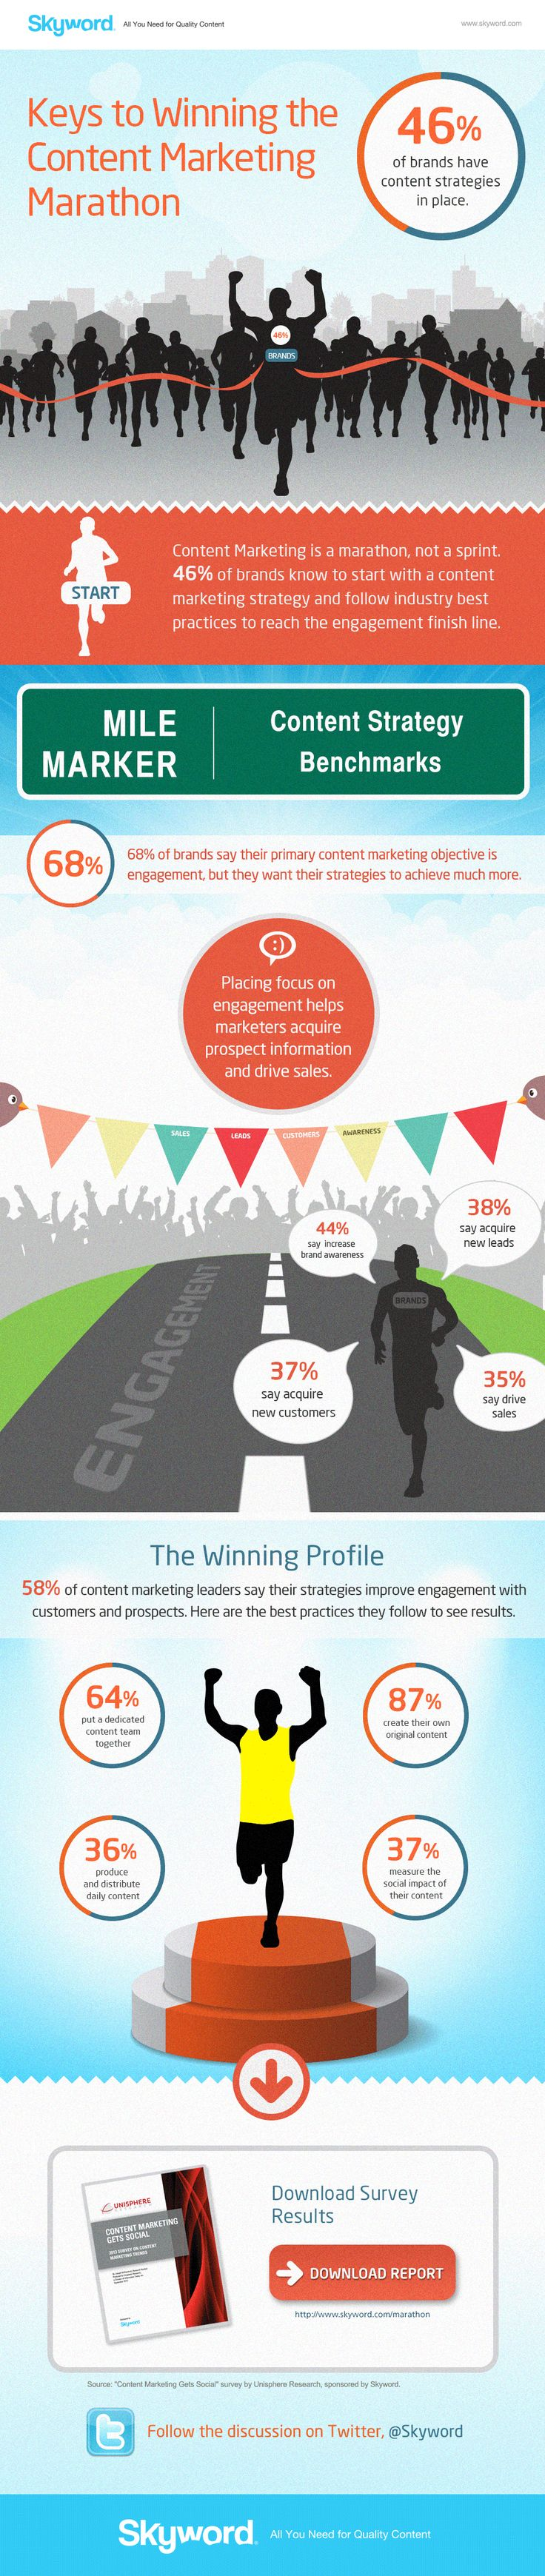 Keys to Winning the #ContentMarketing Marathon #Infographic